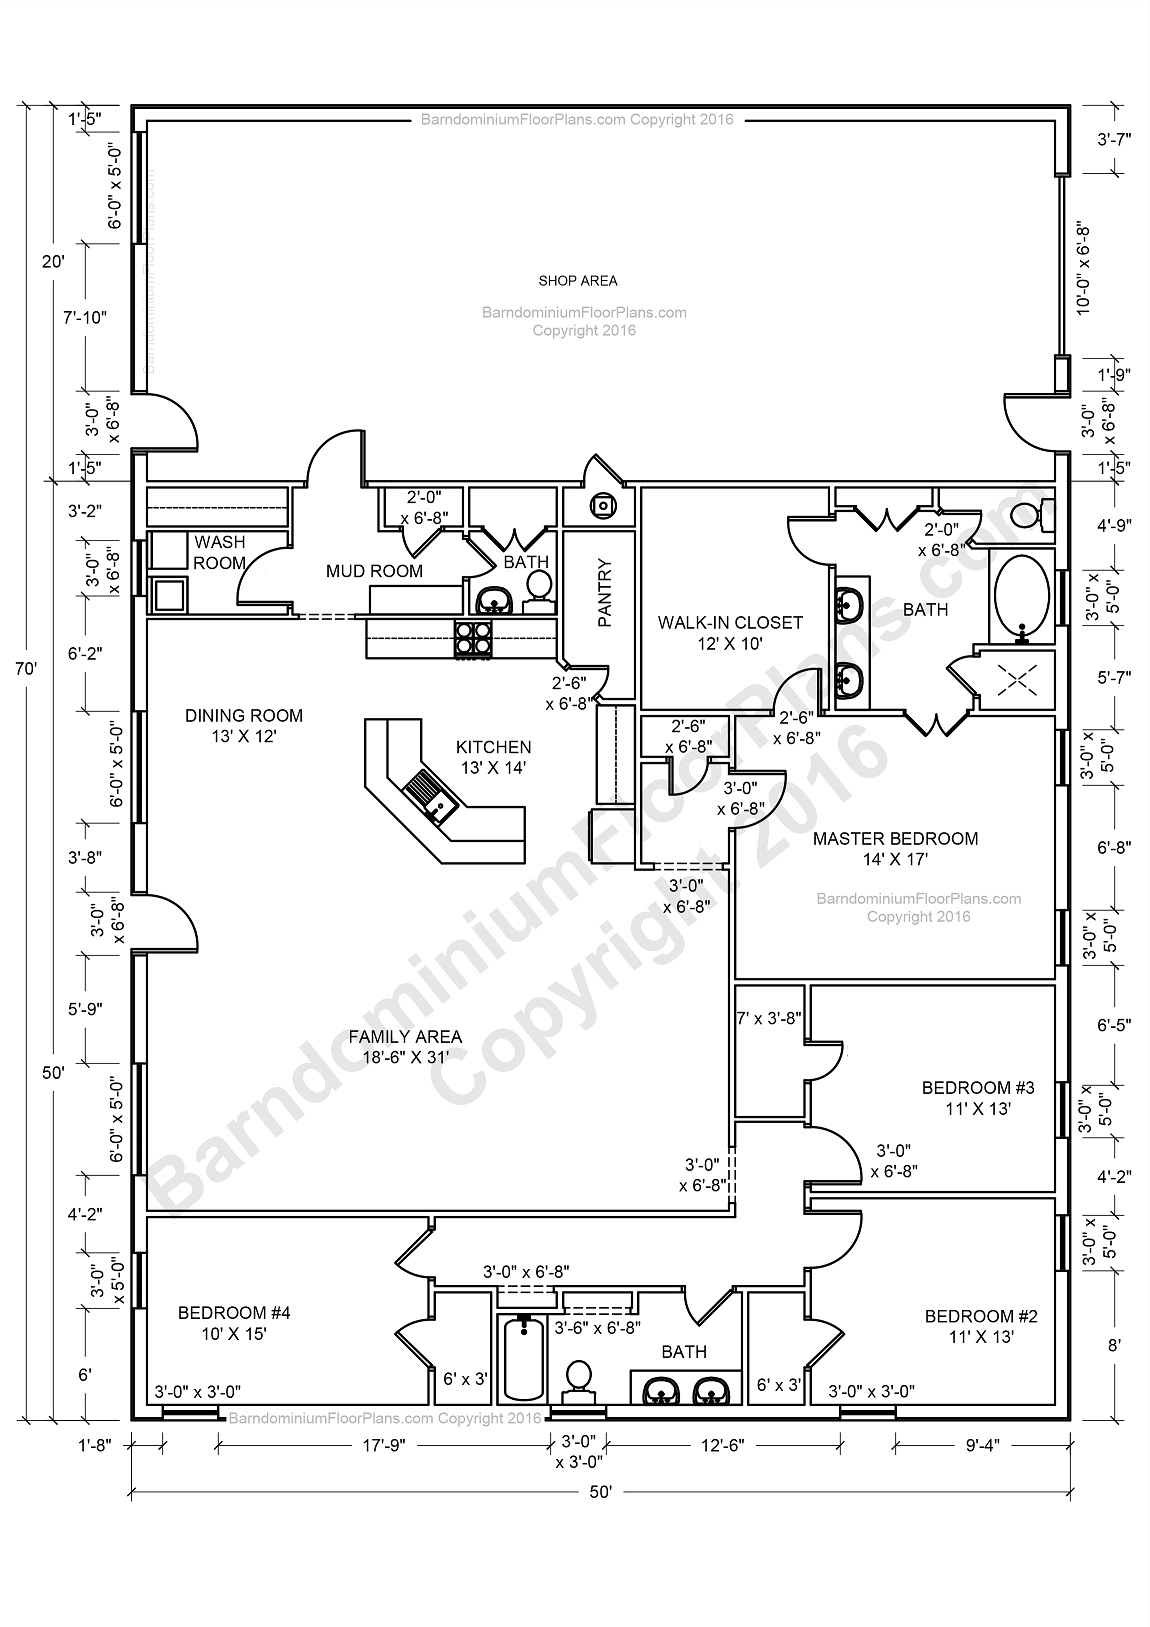 Barndominium floor plans barndominium floor plans 1 800 for Barn floor plan